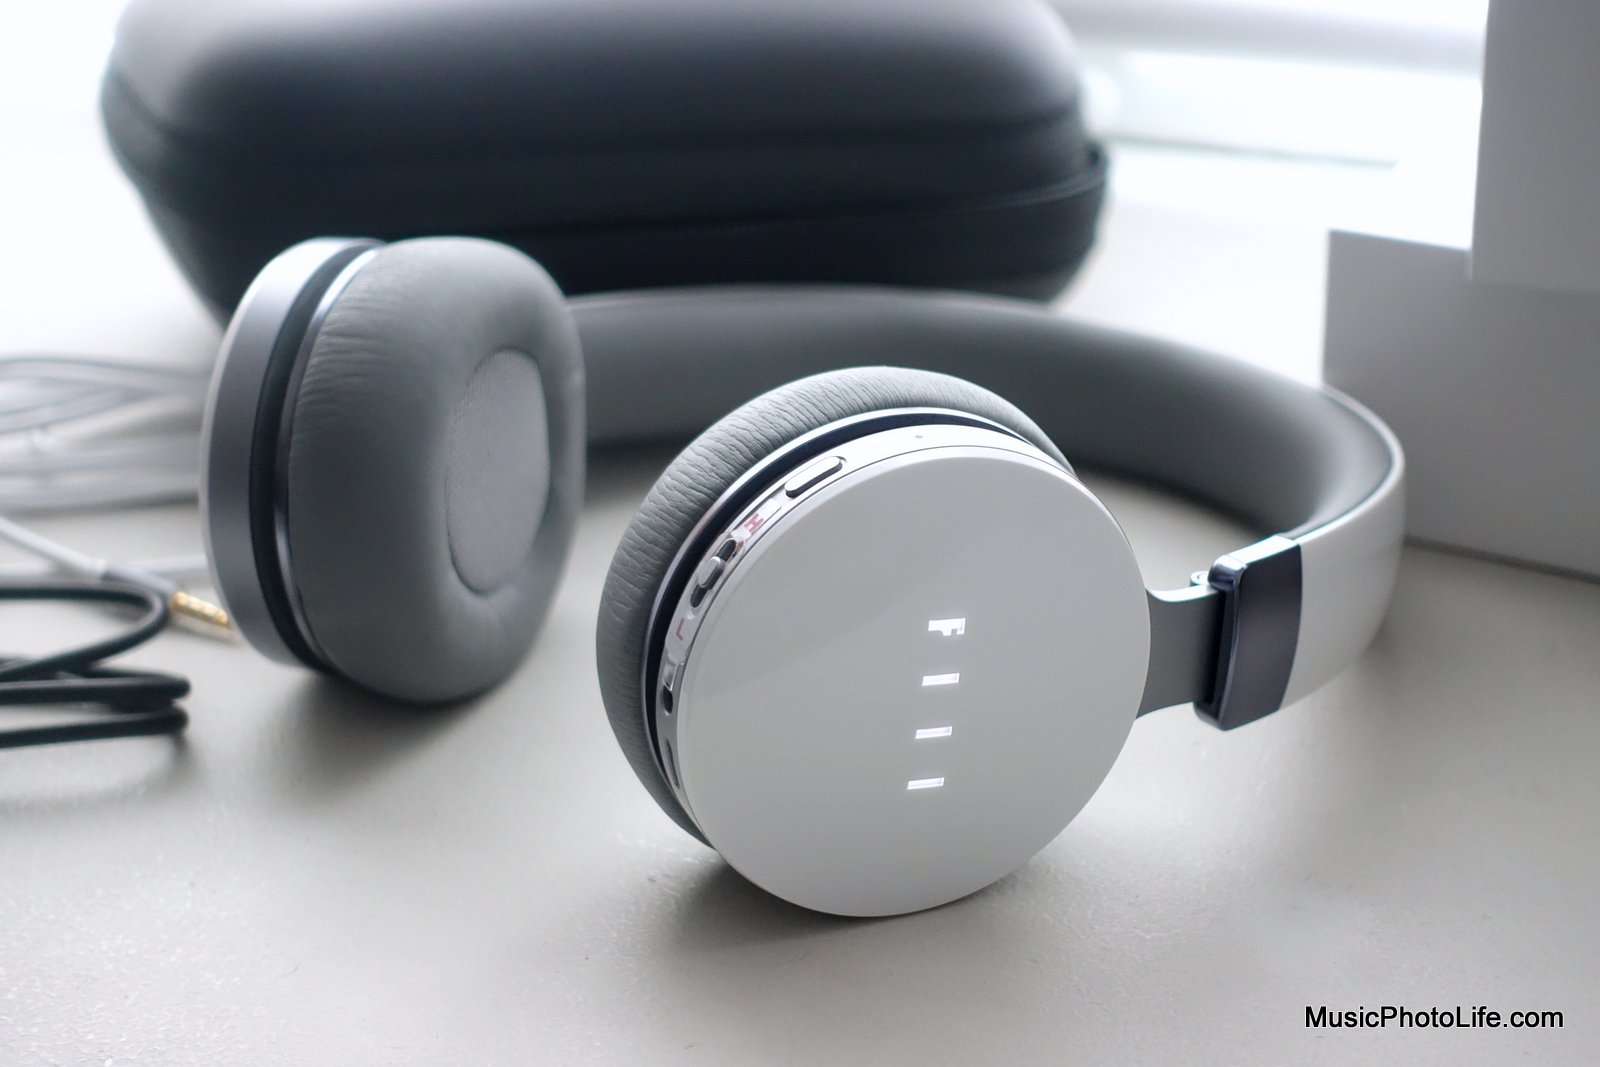 FIIL Diva review by musicphotolife.com